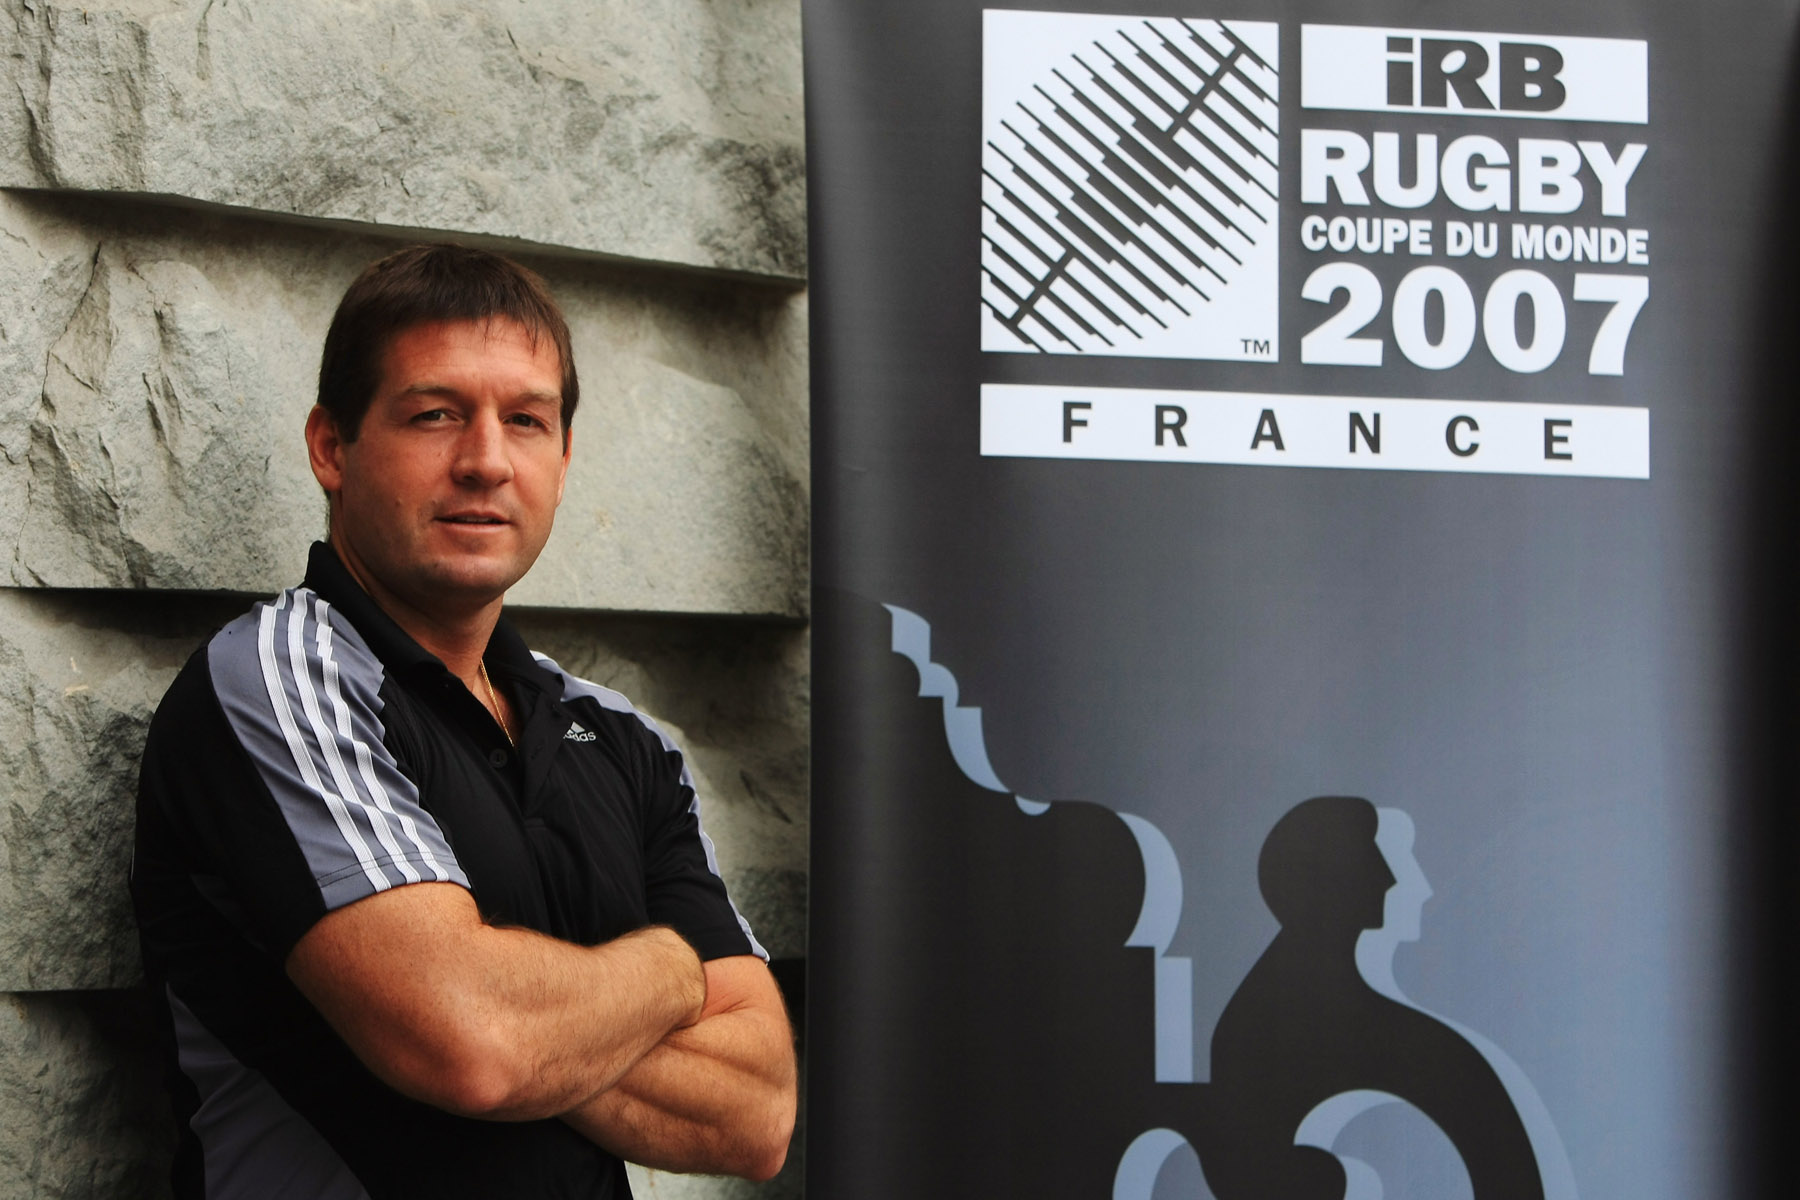 PARIS - OCTOBER 17:  Rugby World Cup referee, Alain Rolland of Ireland poses for the media on October 17, 2007 in Paris, France.  (Photo by Jamie McDonald/Getty Images) *** Local Caption *** Alain Rolland